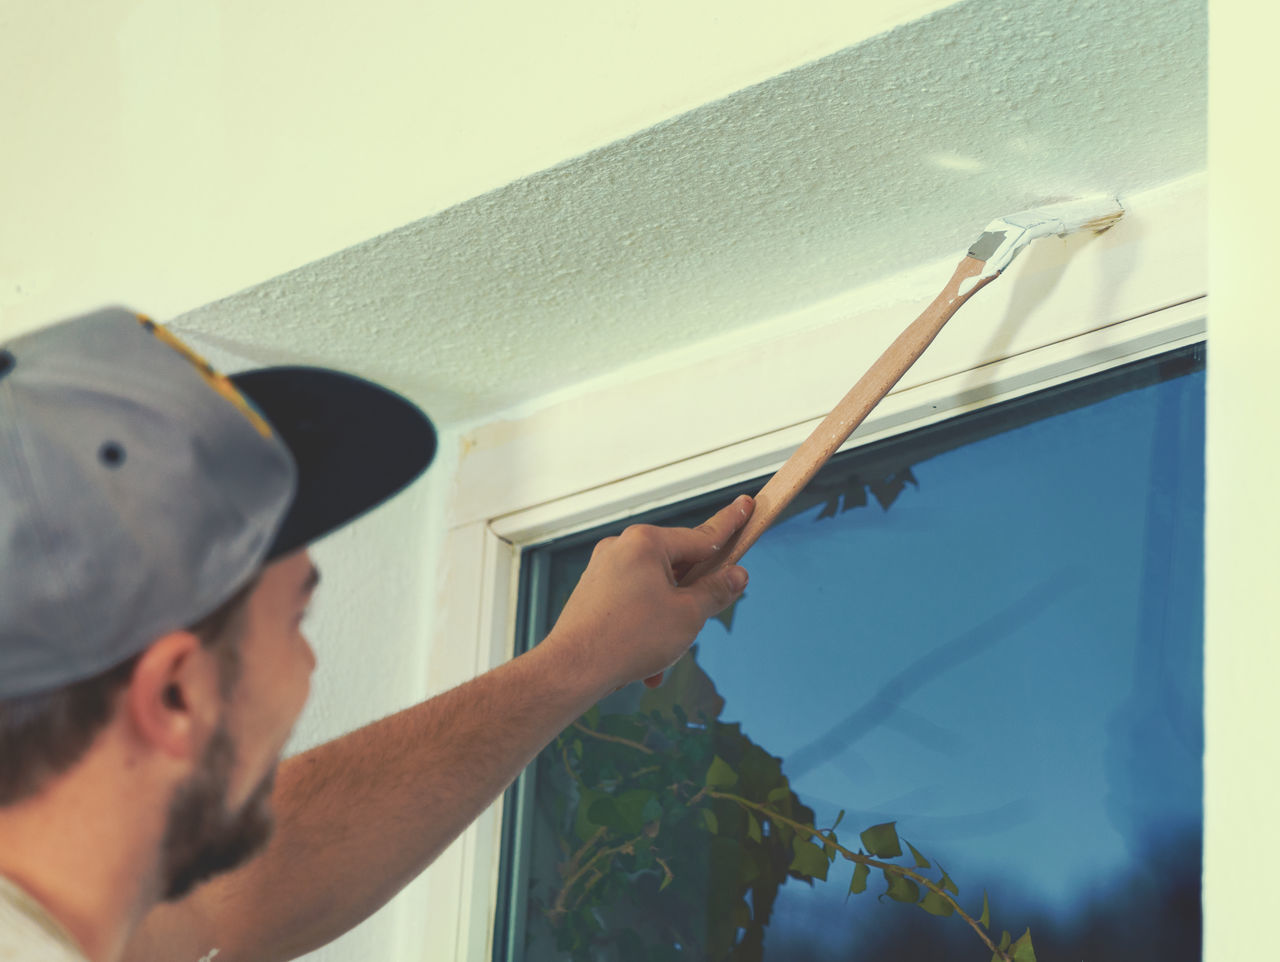 Brush Cap Color DIY Do It Yourself Doityourself French Home Job Men At Work  Paint Paintbrush Painter Refurbish Renovation Roll Room Wall Worker Young Adult Young Men